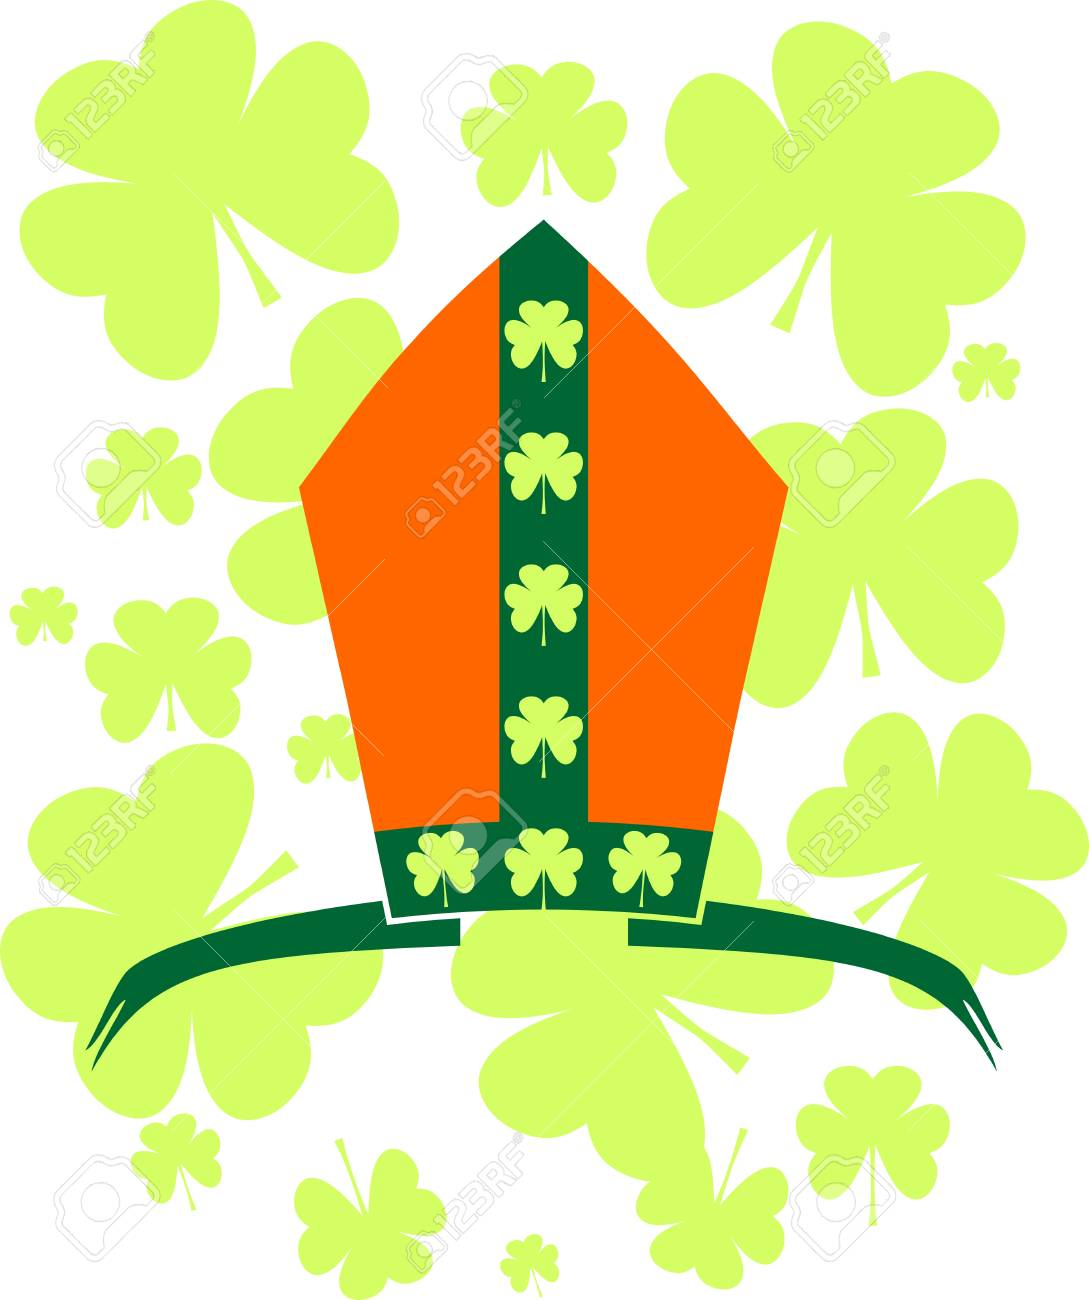 st patrick s day greeting card template bishop hat with shamrock